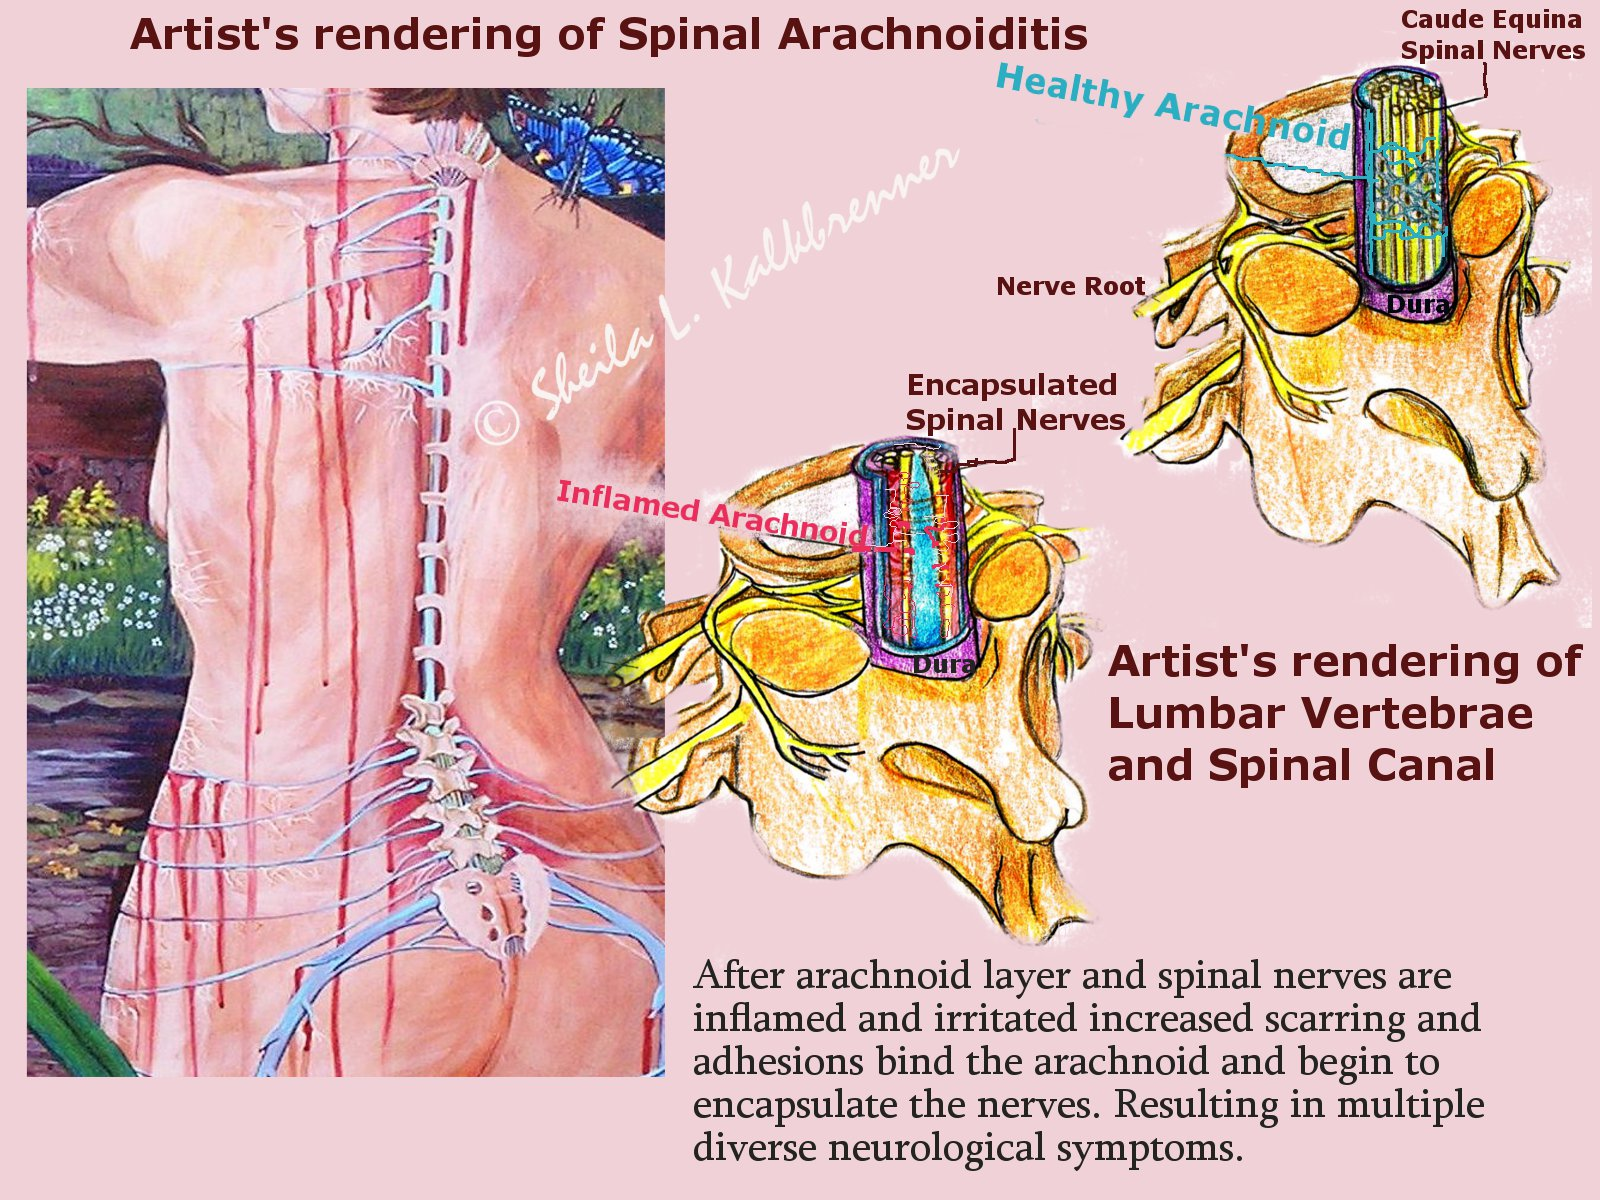 About Arachnoiditis | Art For Arachnoiditis